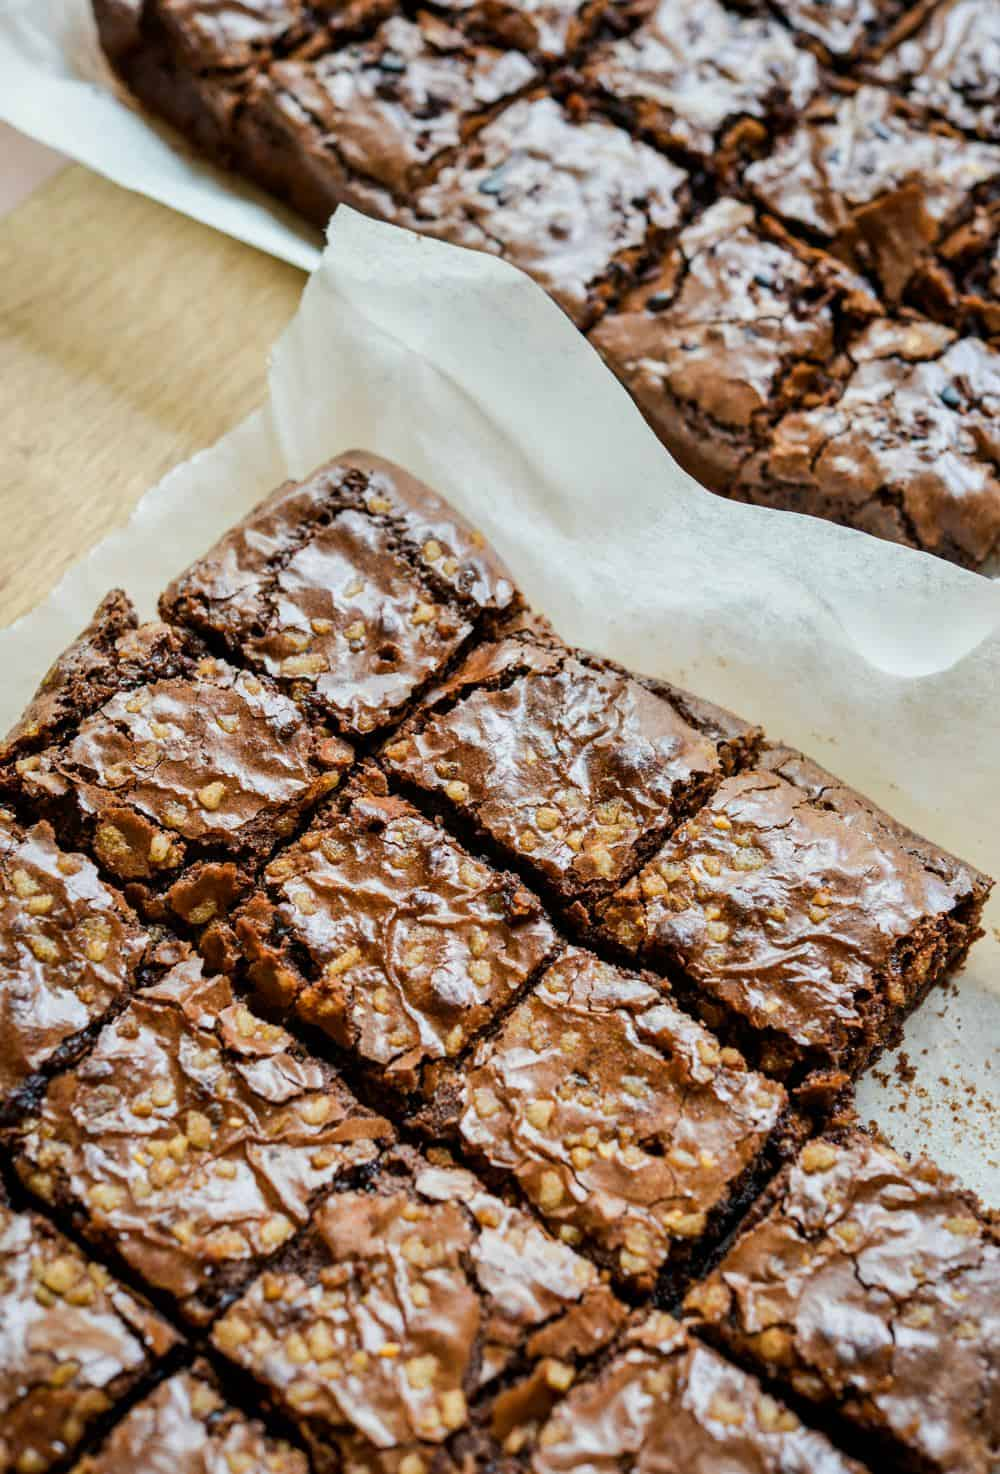 Chocolate fudge brownies with walnuts cut into squares, presented on parchment paper